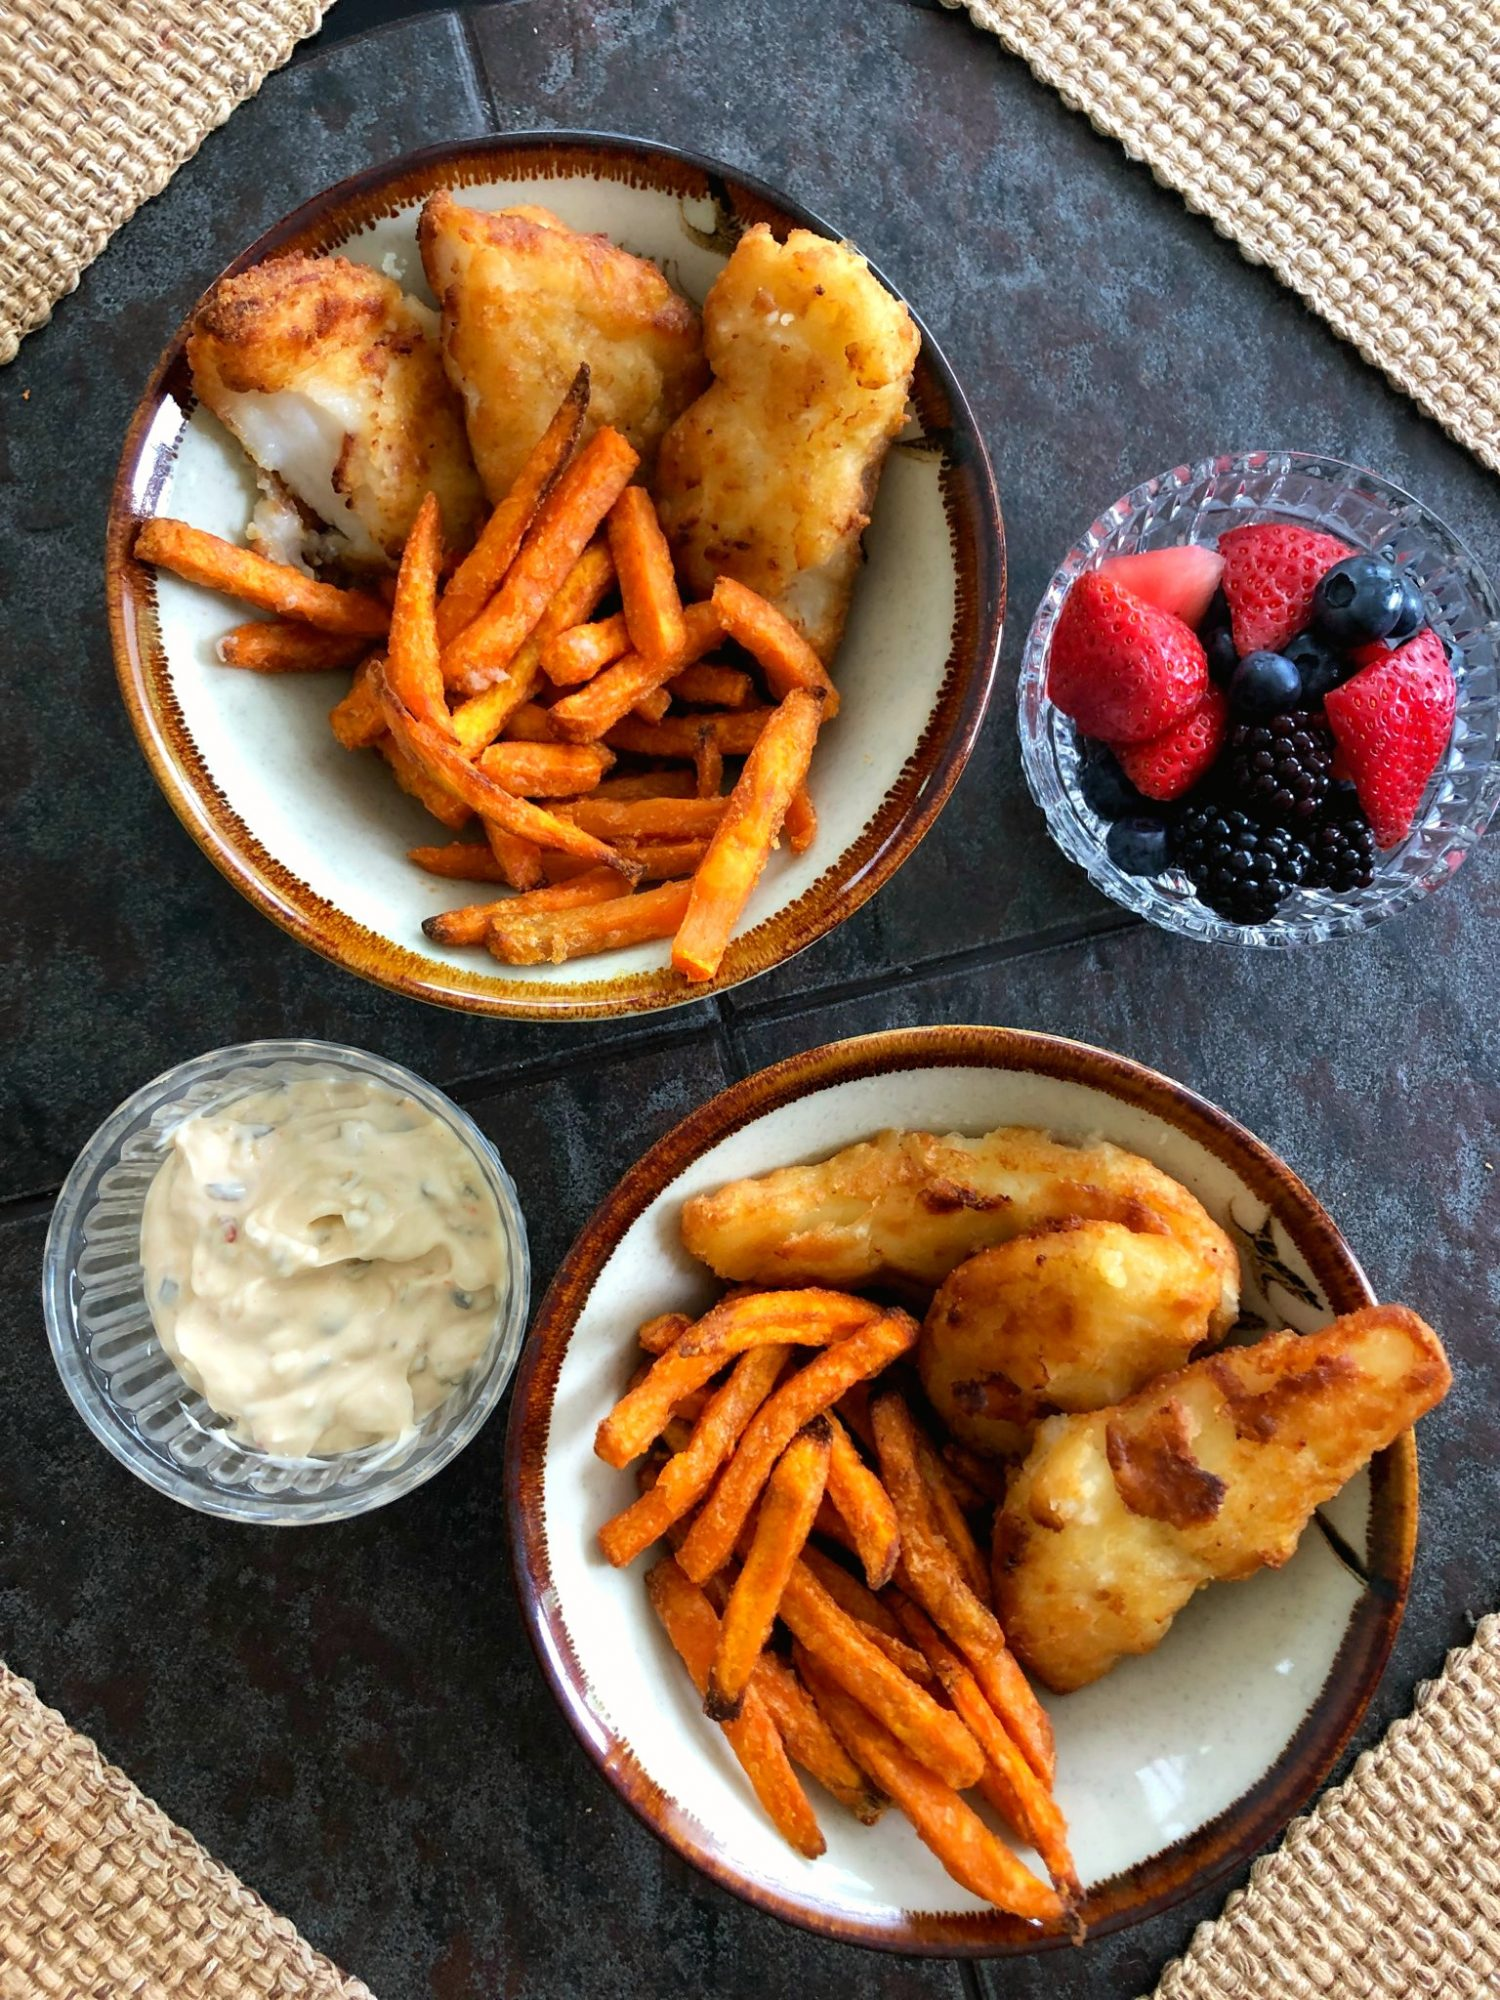 fried cod with sweet potato fries in bowls